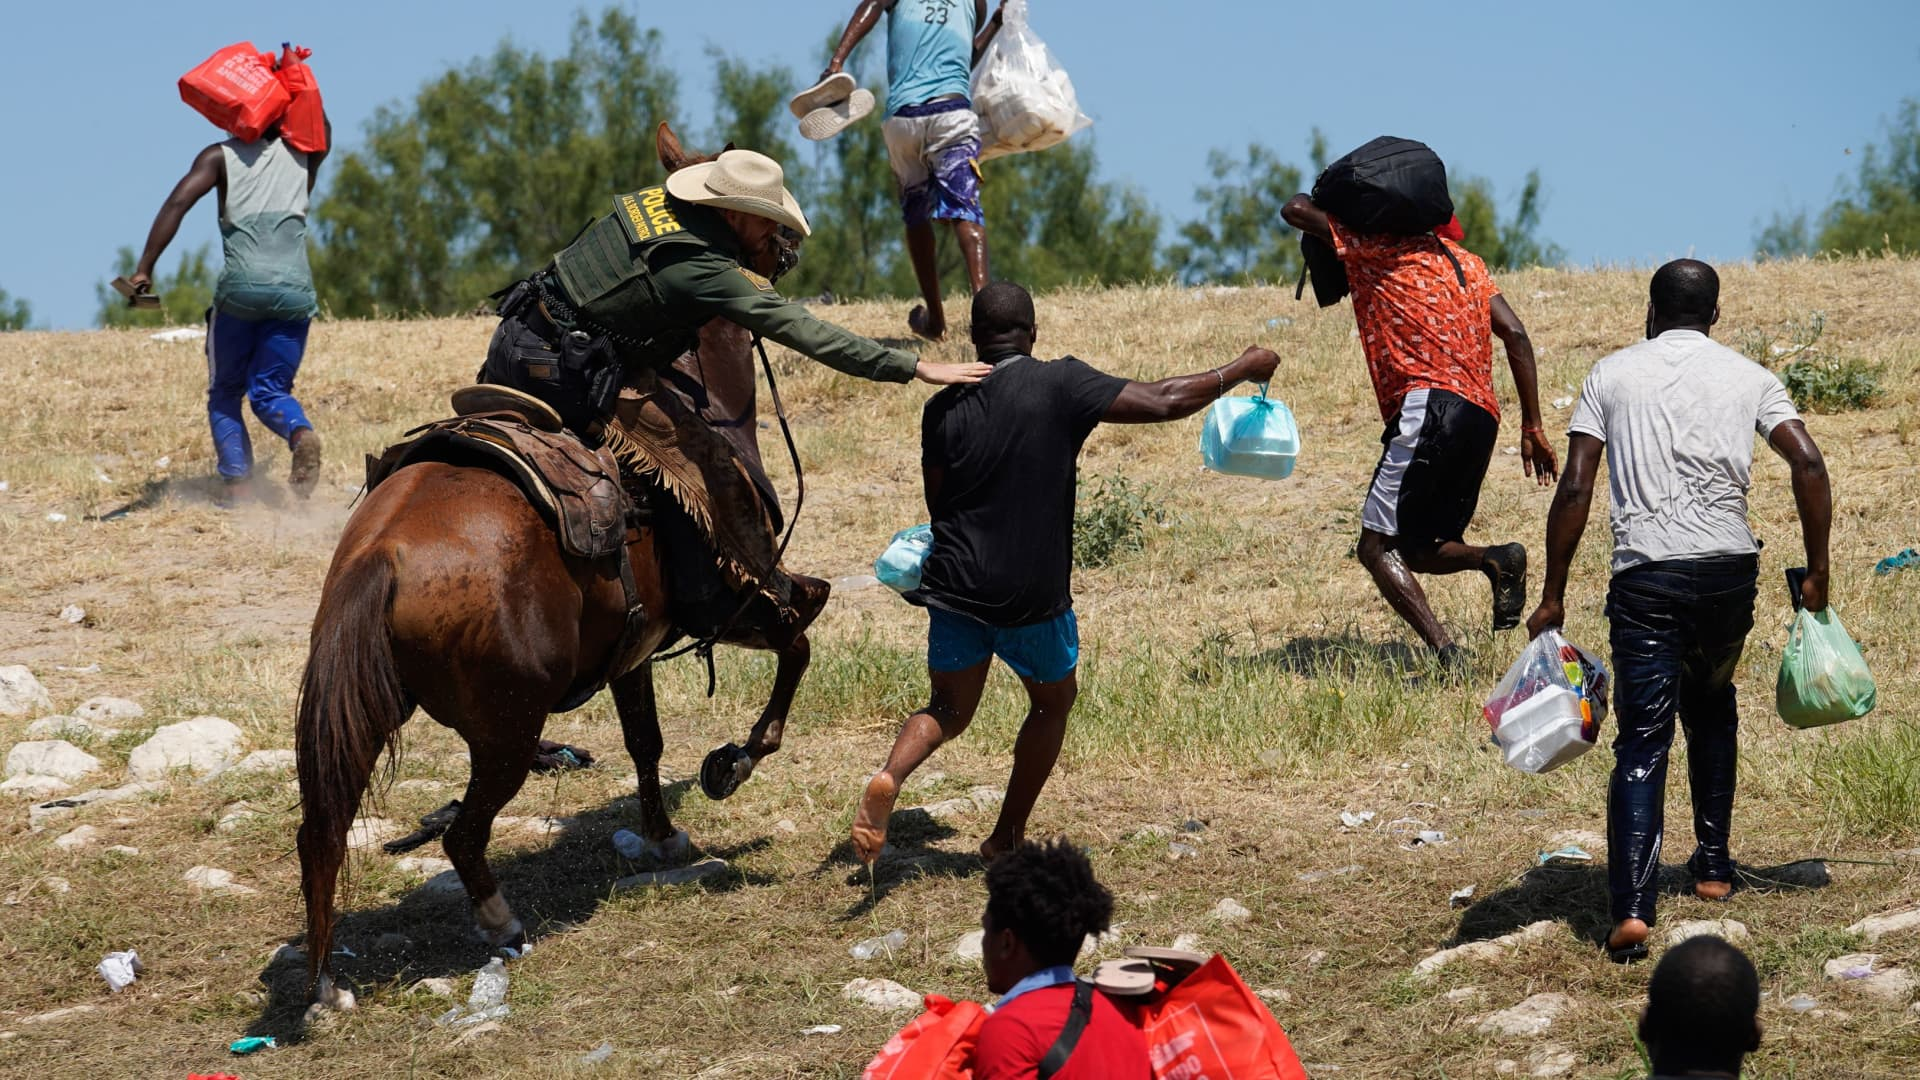 A United States Border Patrol agent on horseback tries to stop a Haitian migrant from entering an encampment on the banks of the Rio Grande near the Acuna Del Rio International Bridge in Del Rio, Texas on September 19, 2021.